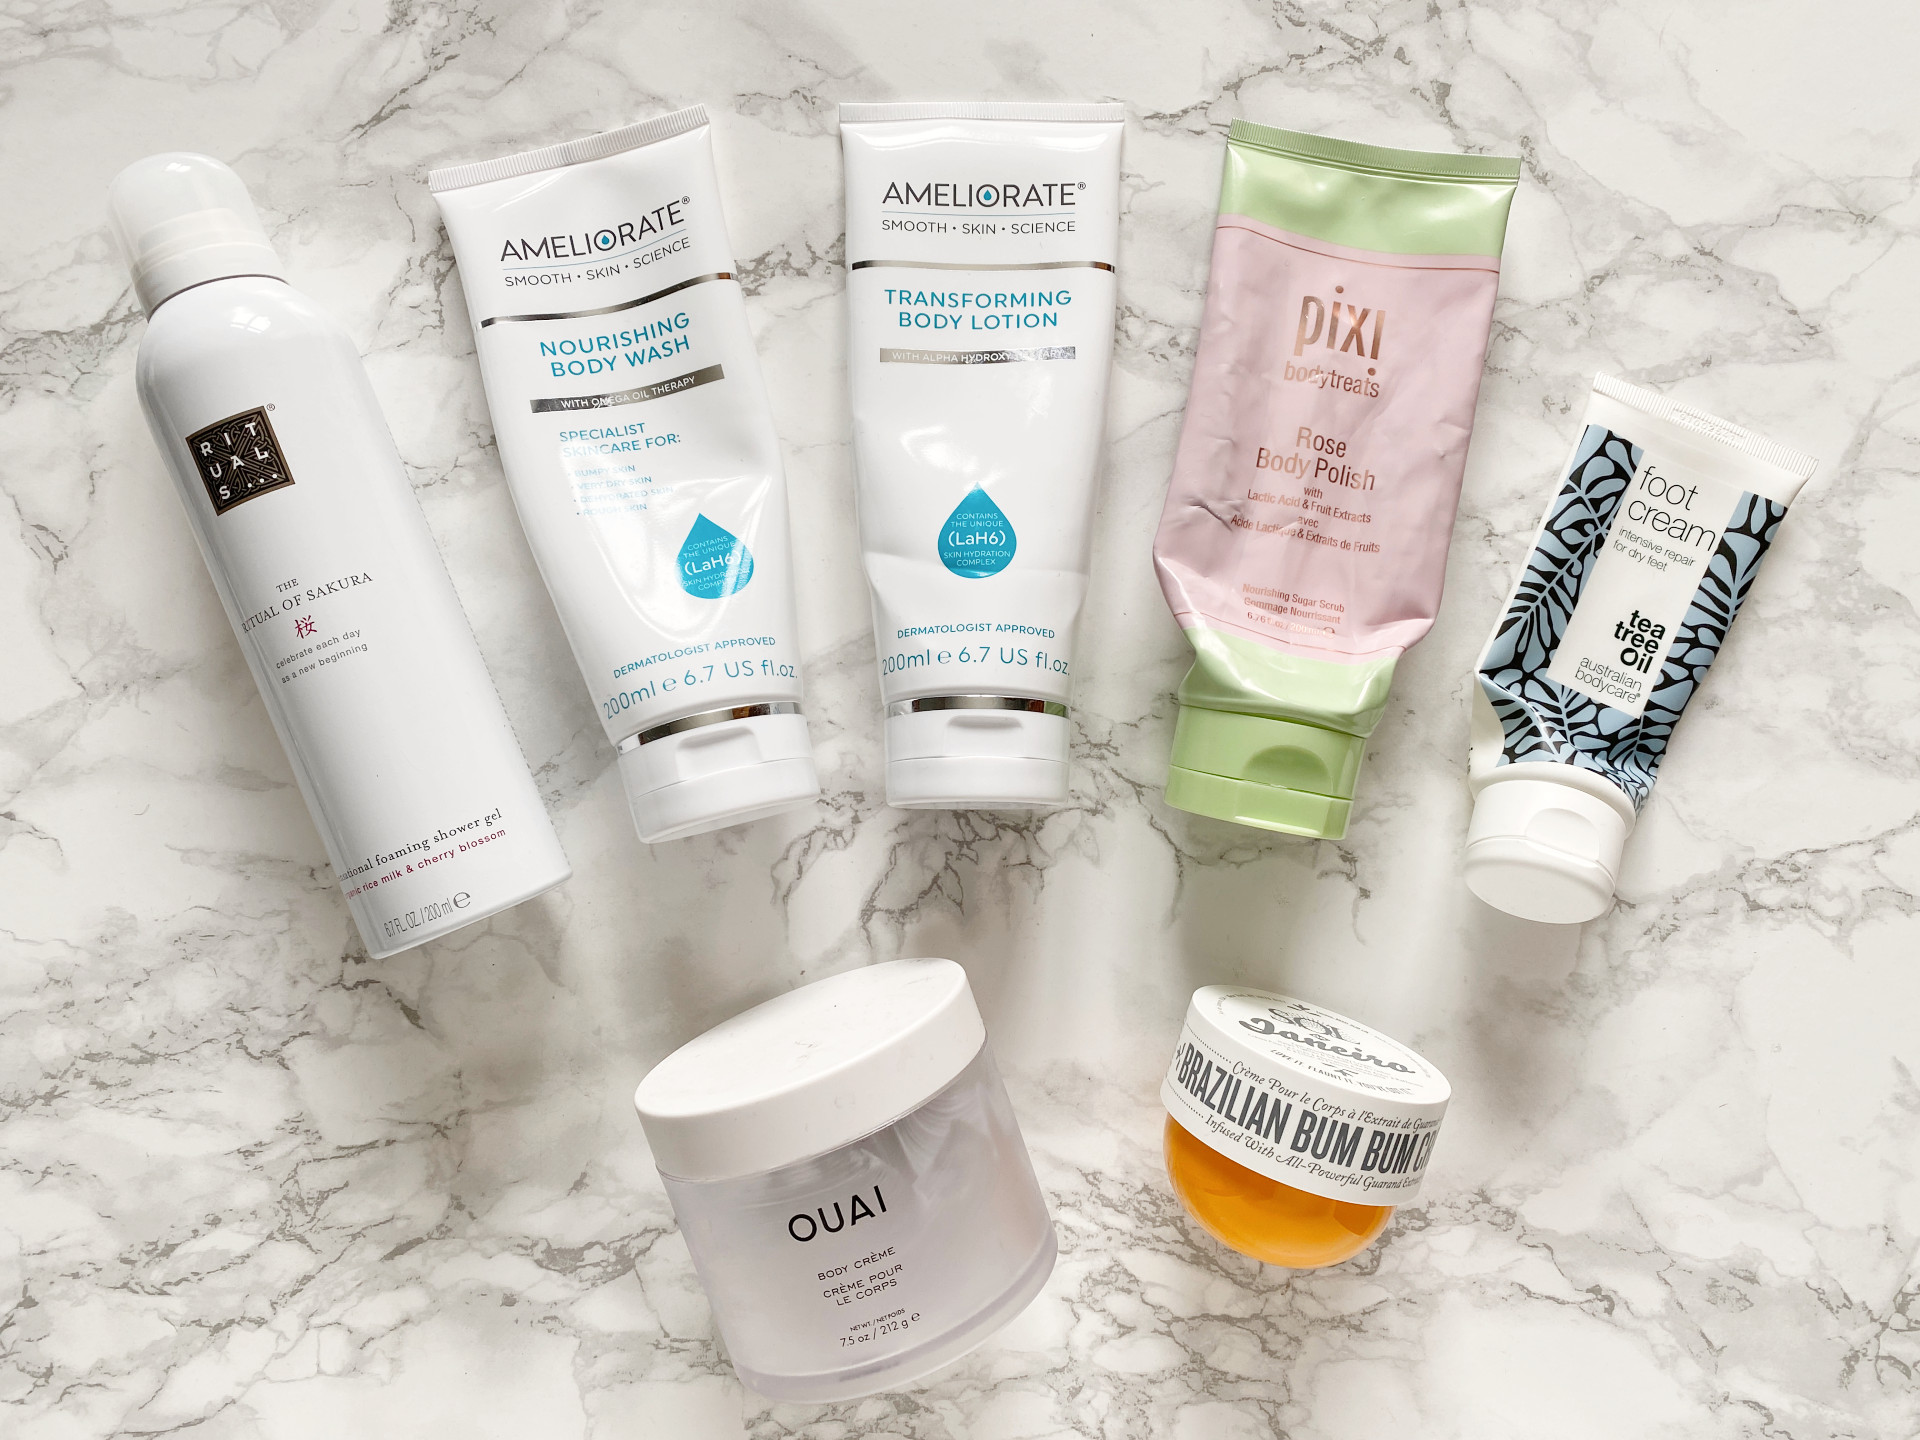 bodycare empties and reviews ft ameliorate, rituals, ouai, pixi